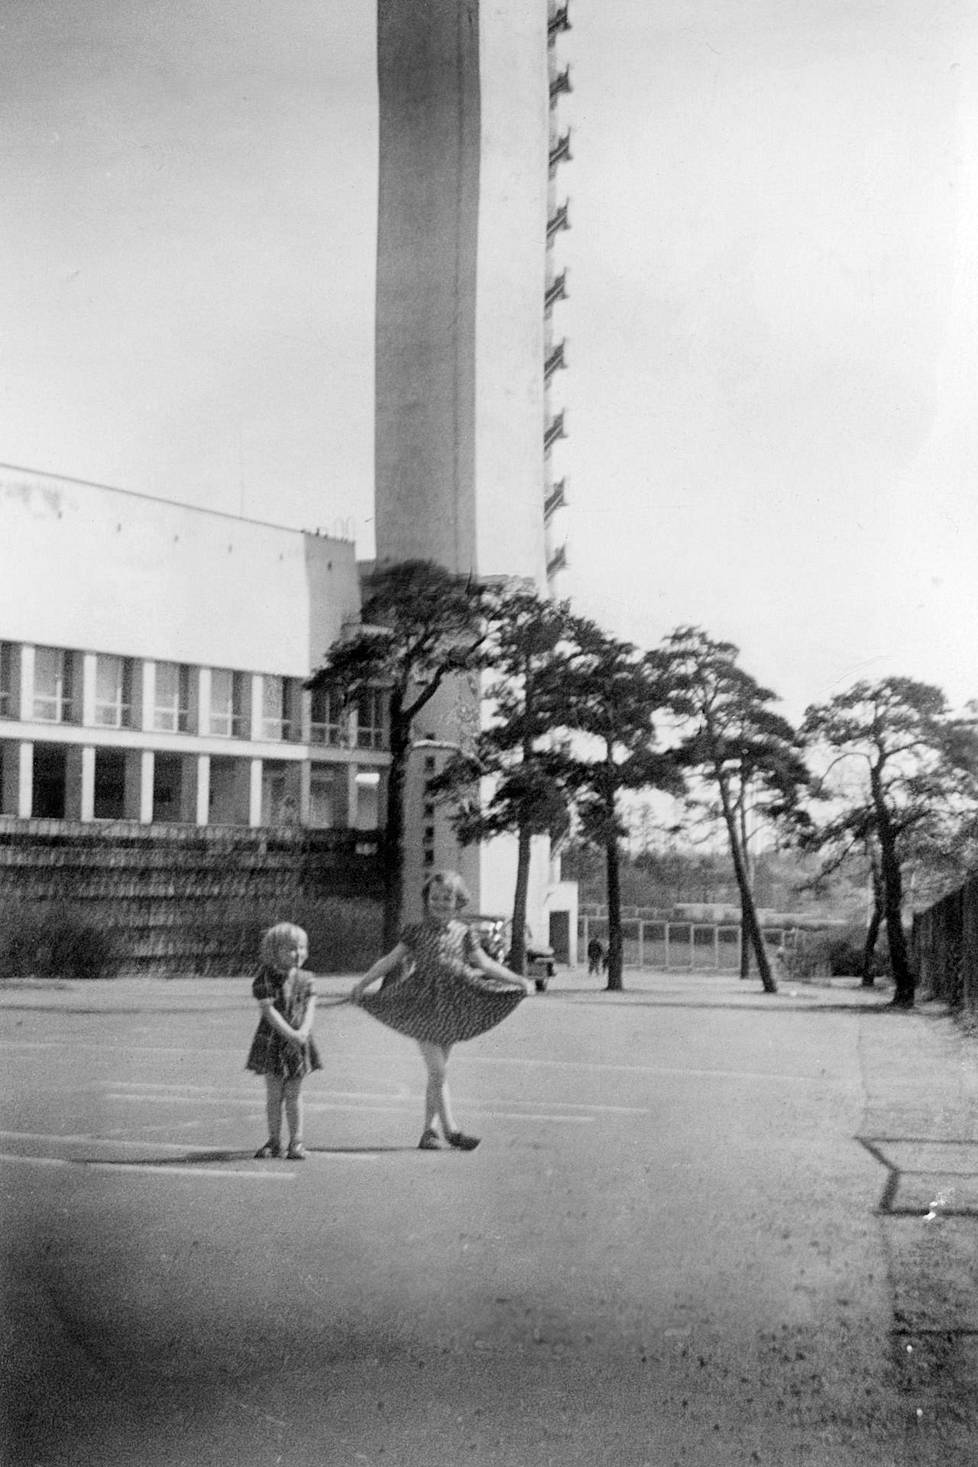 Tuula and Paula Stenroos playing in the courtyard of the Olympic Stadium in the 1950s.